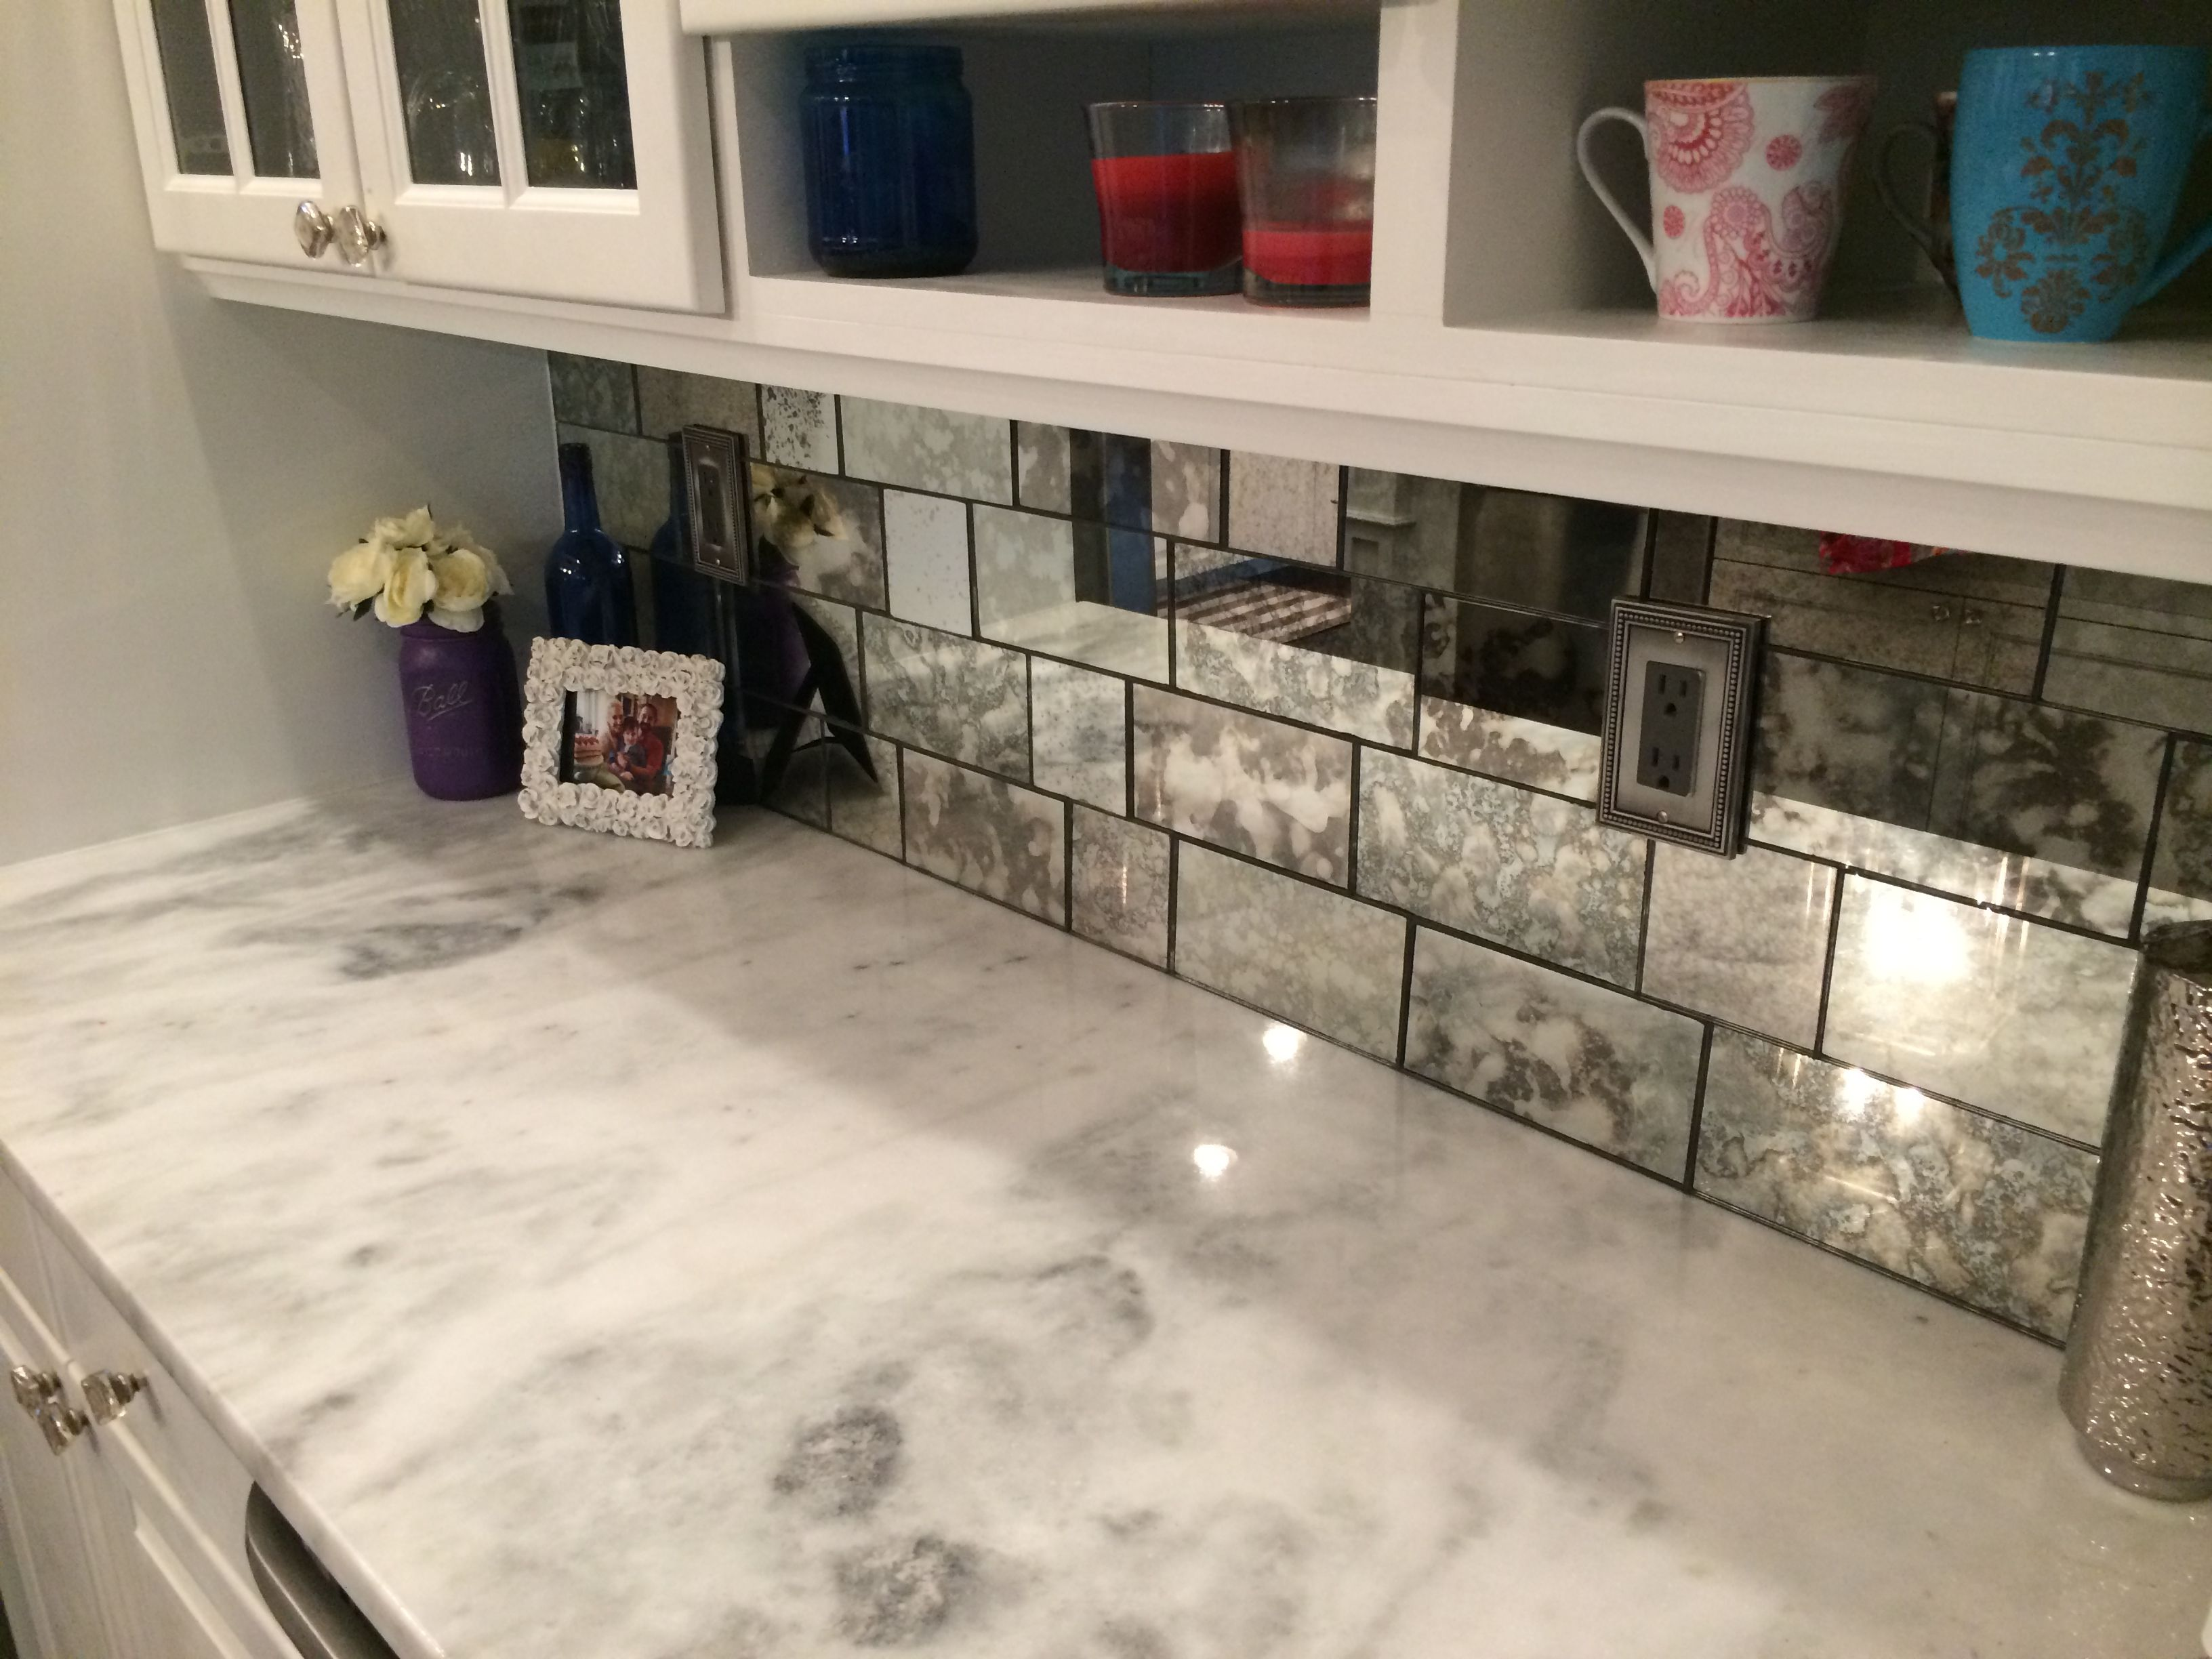 bonitaglassshoppe antique mirror backsplash was installed ...